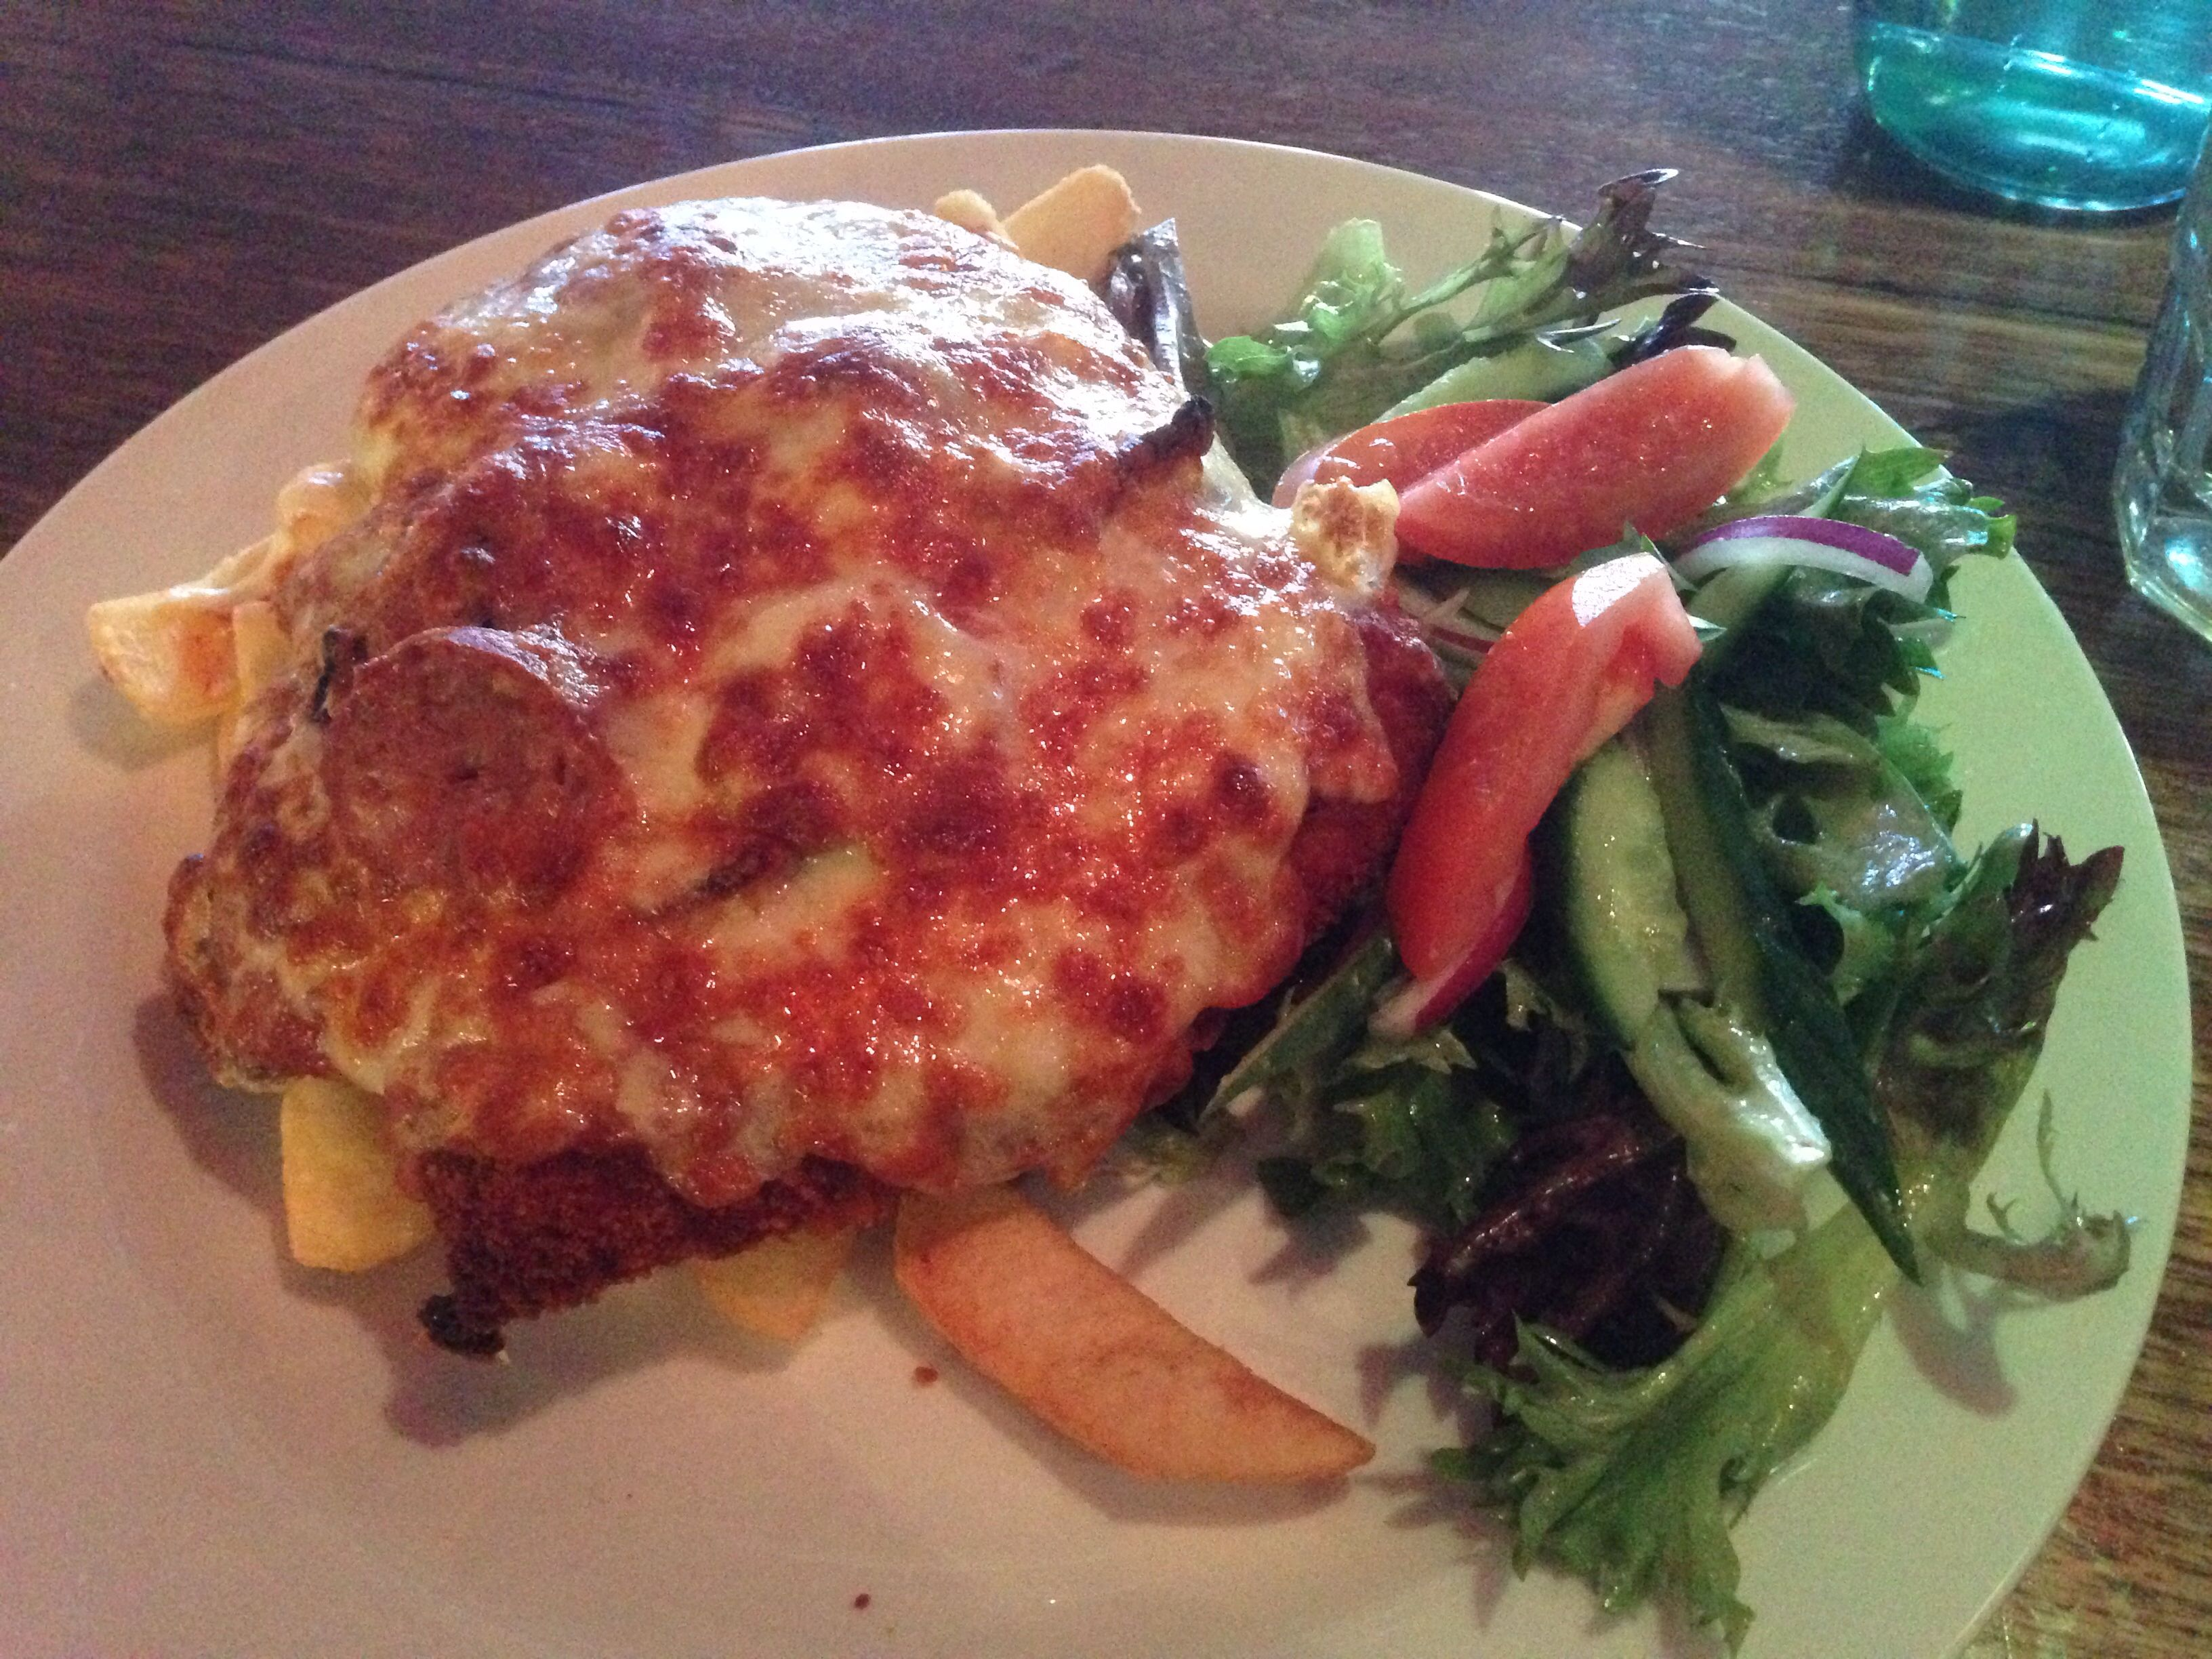 Snag Parma - Chicken Parma plus bacon and sausage, accompanied with chips and salad all for $13!